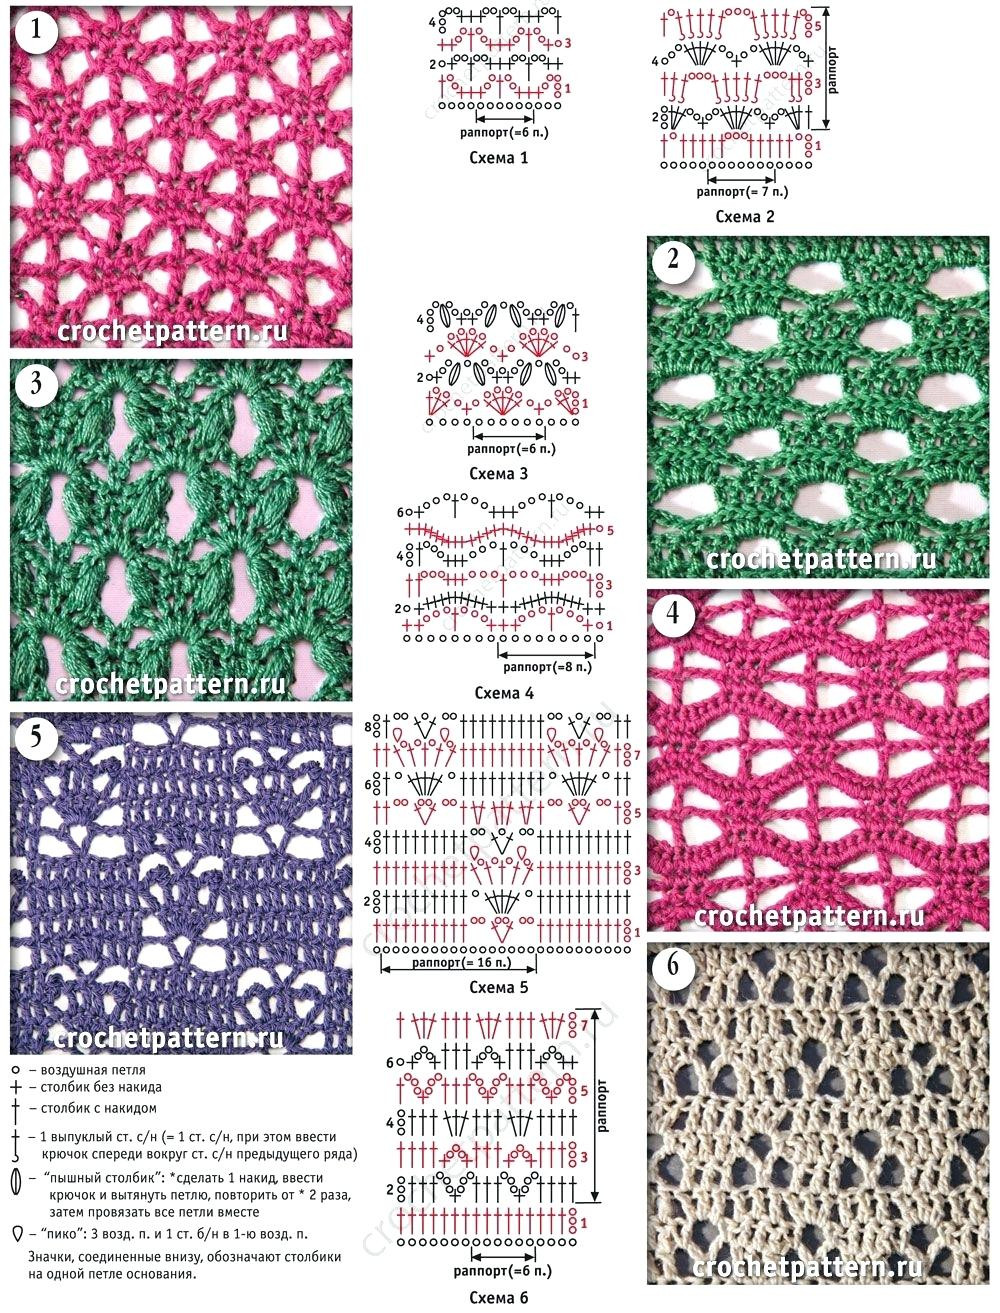 Awesome Diagram Crochet Stitches Patterns Diagram Crochet Stitches Diagram Of Amazing 47 Ideas Crochet Stitches Diagram